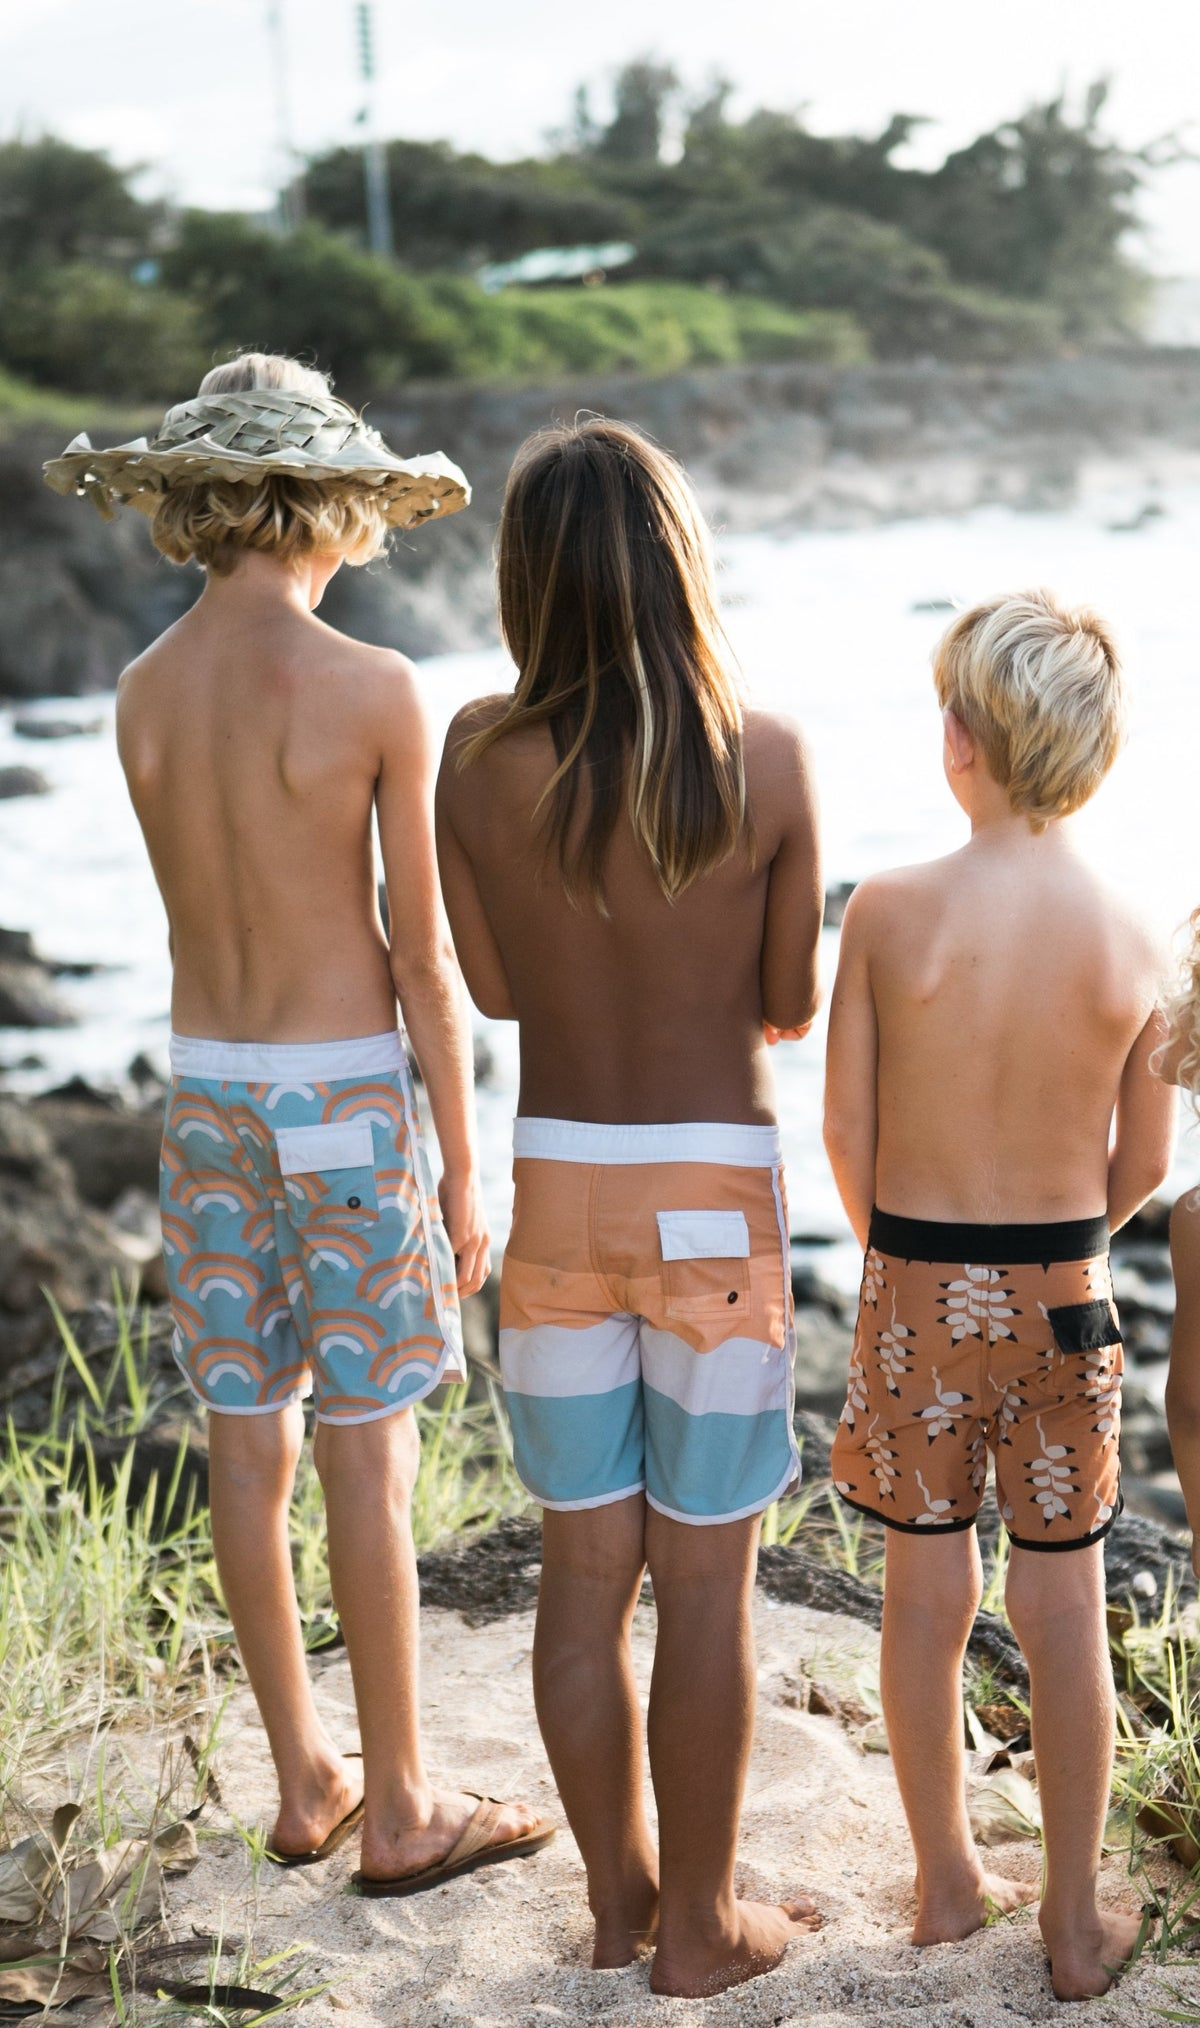 OF ONE SEA RAINBOW RETRO SURF TRUNKS